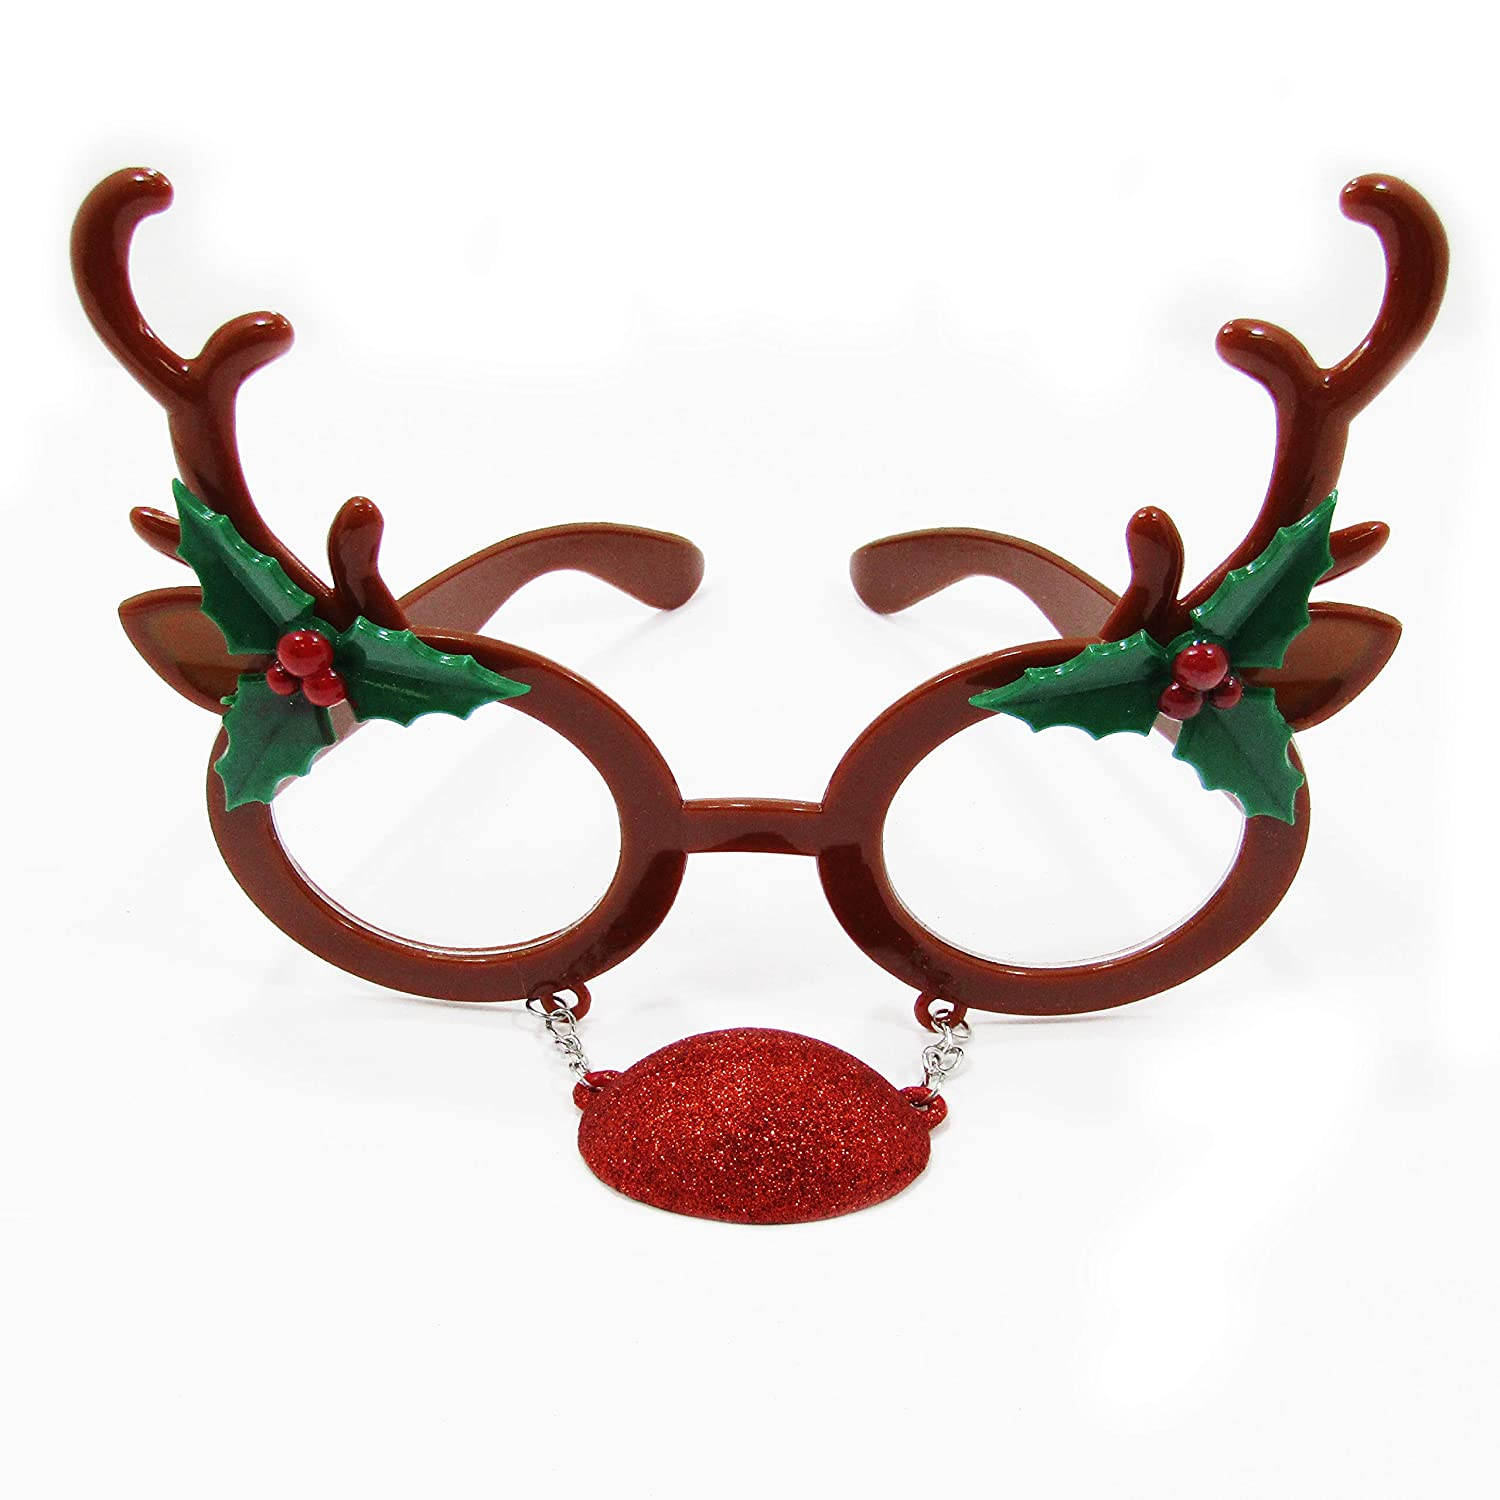 Unisex Elf Reindeer Christmas Holiday Novelty Party Glasses All Ages 377440-87